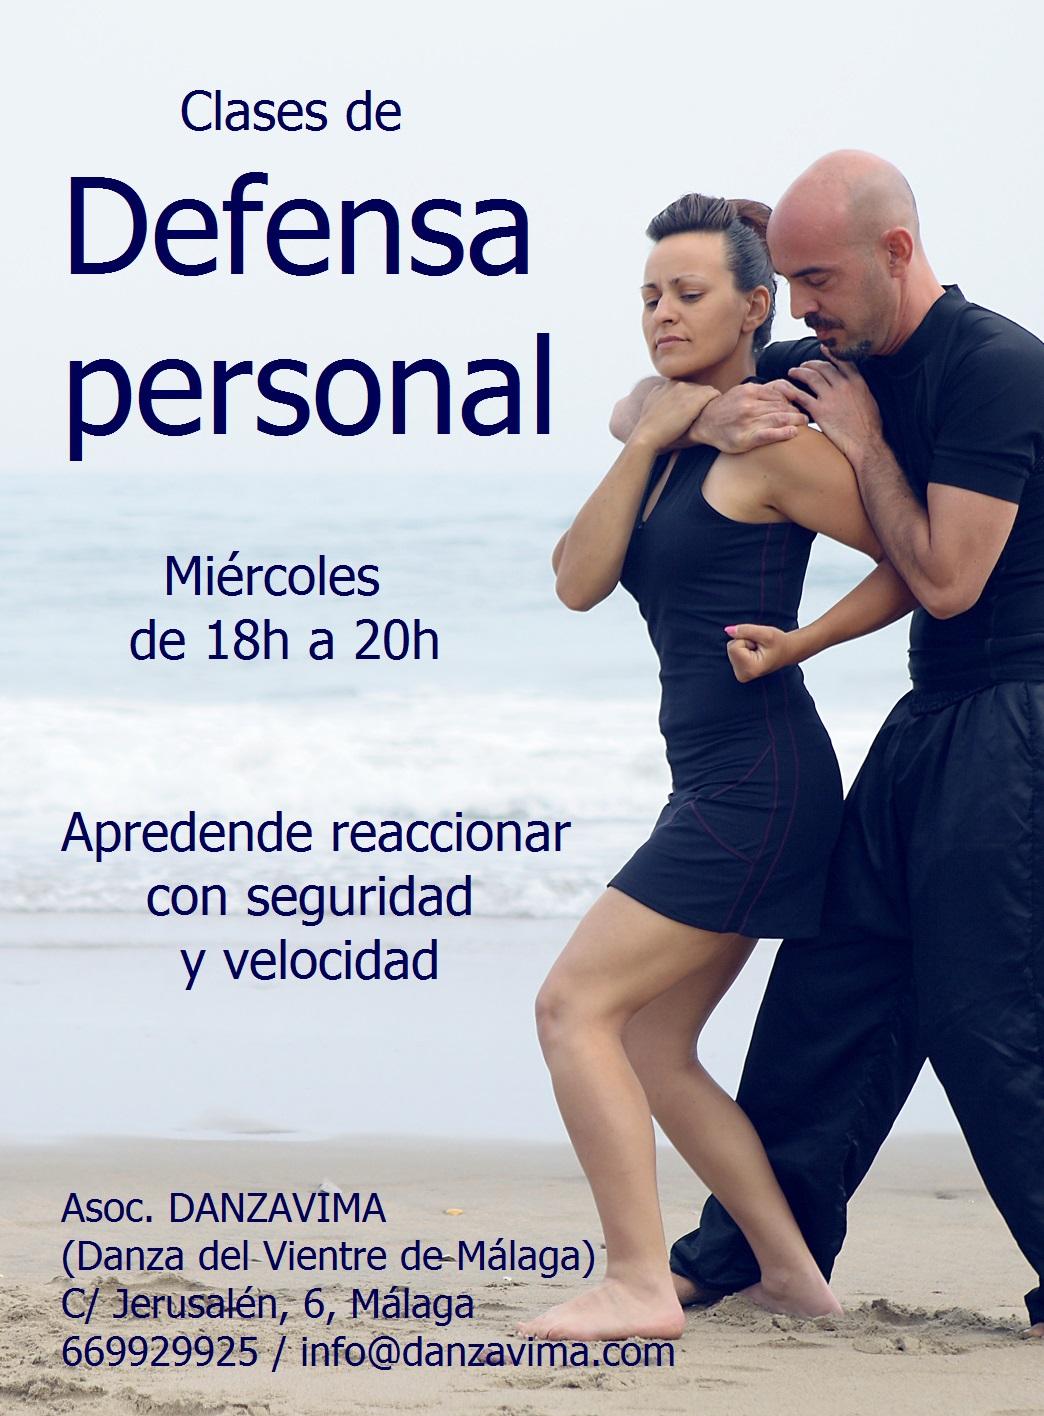 danzavima defensa personal cartel